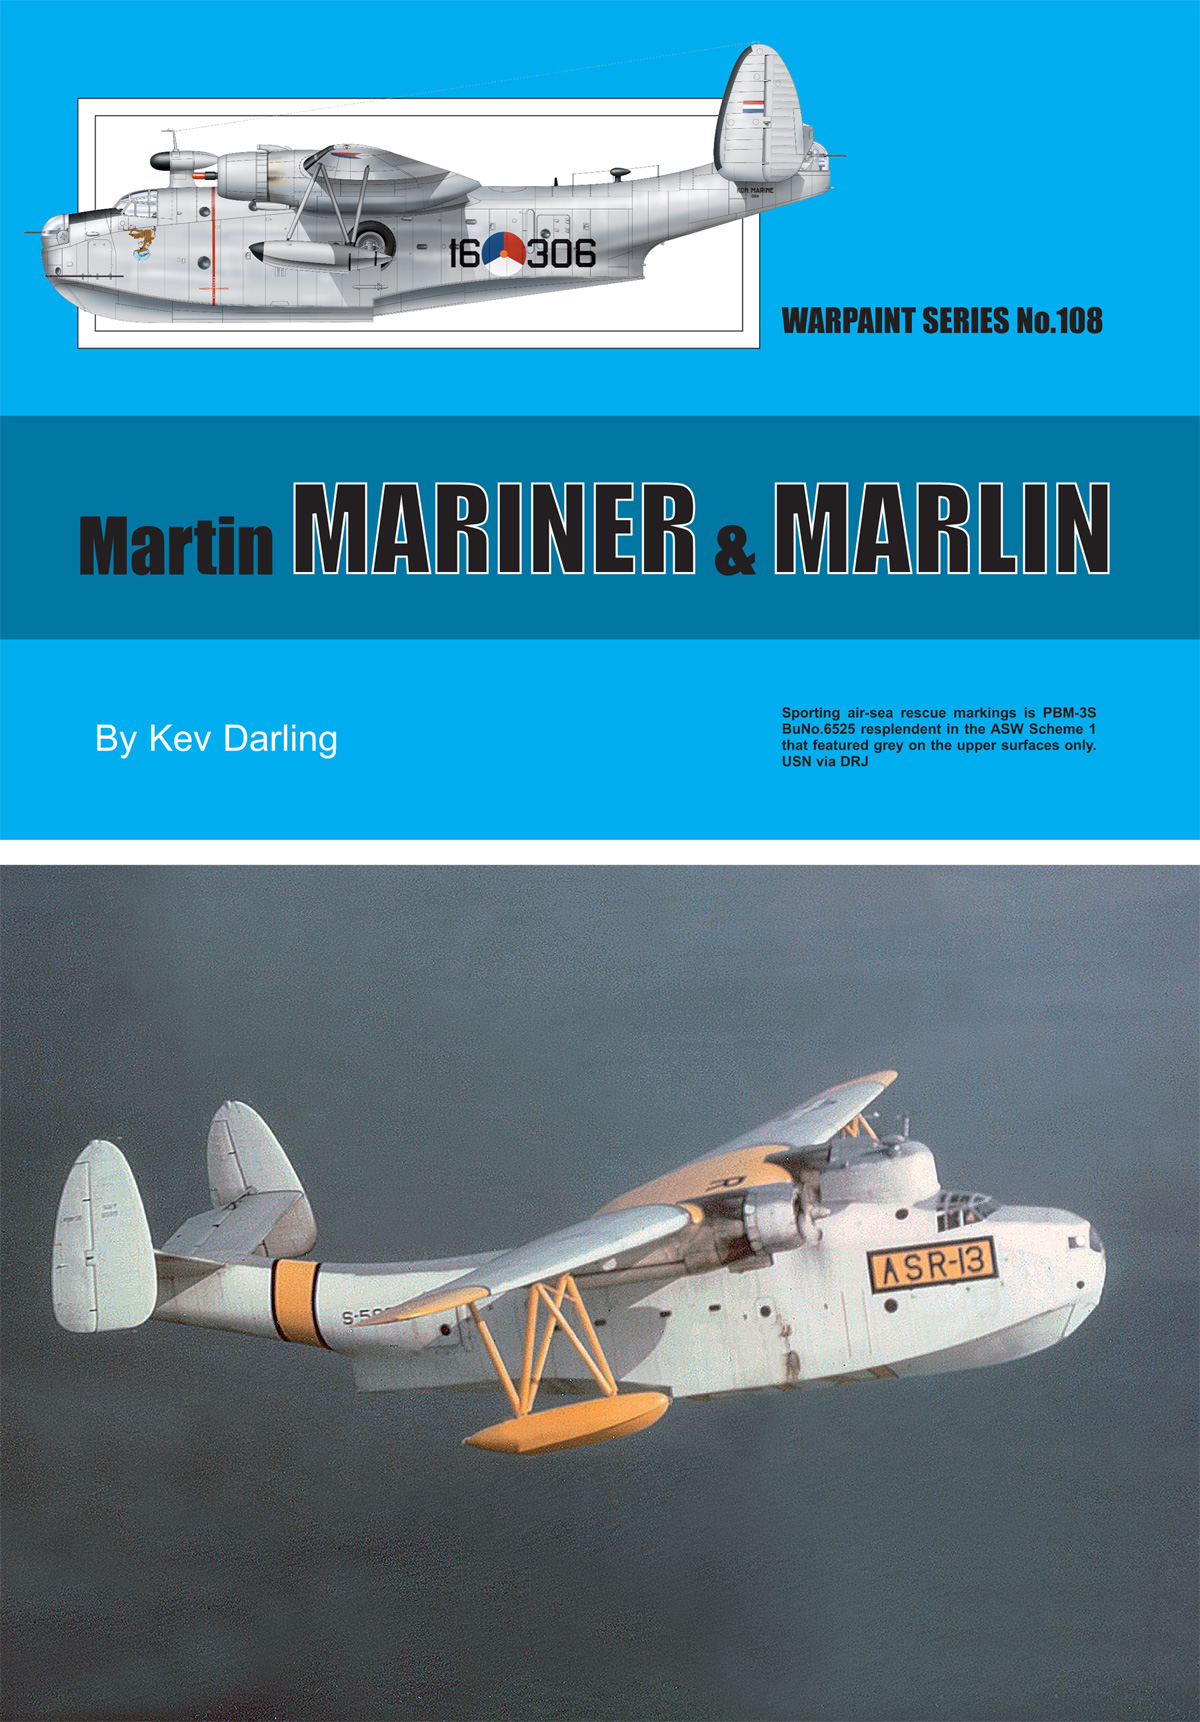 Guideline Publications USA No.108 Martin Mariner & Marlin No.108  in the Warpaint series